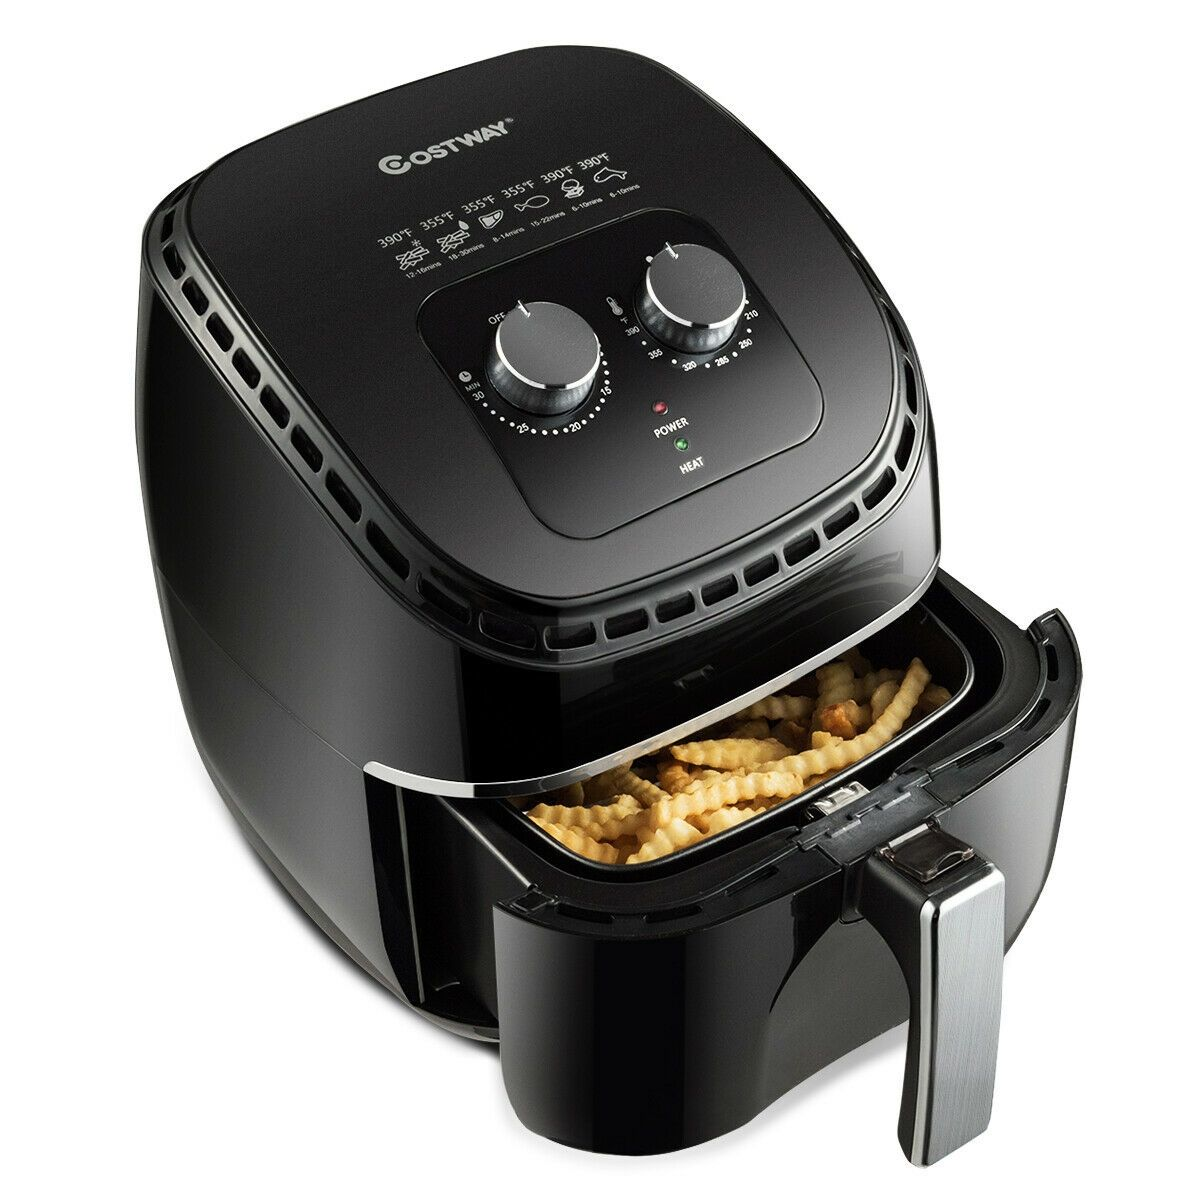 3.5 QT Electric 1300W Hot Air Fryer with Timer